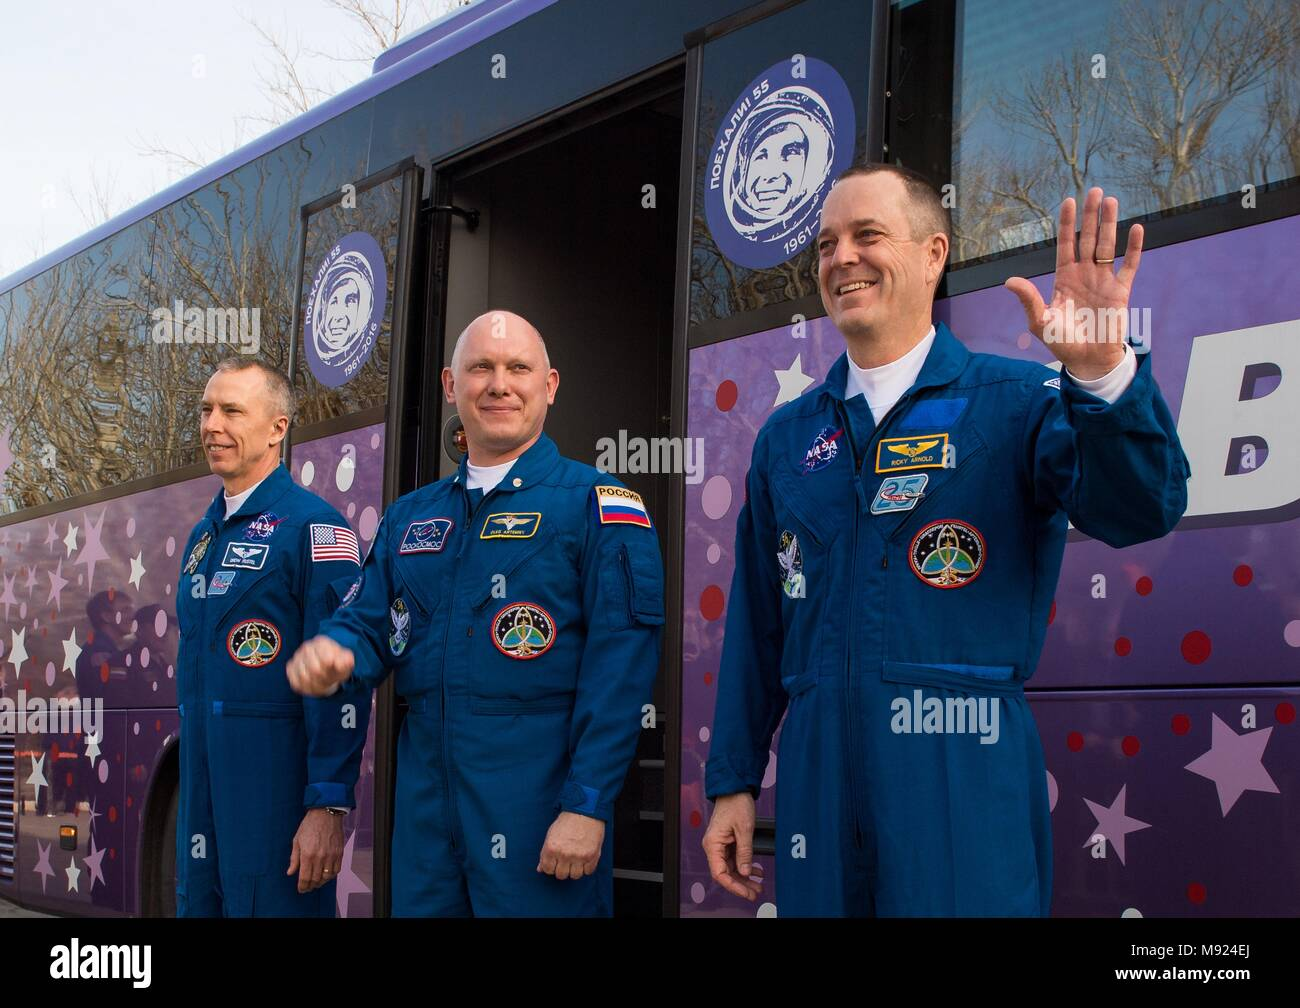 Baikonur Cosmodrome, Kazakhstan. 21st Mar, 2018.  International Space Station Expedition 55 crew Drew Feustel of NASA, left, Soyuz Commander Oleg Artemyev of Roscosmos, center, and flight engineer Ricky Arnold of NASA, right, wave farewell to family and friends as they depart the Cosmonaut Hotel to suit-up for their Soyuz launch to the International Space Station from the Baikonur Cosmodrome March 21, 2018 in Baikonur, Kazakhstan. Credit: Planetpix/Alamy Live News - Stock Image